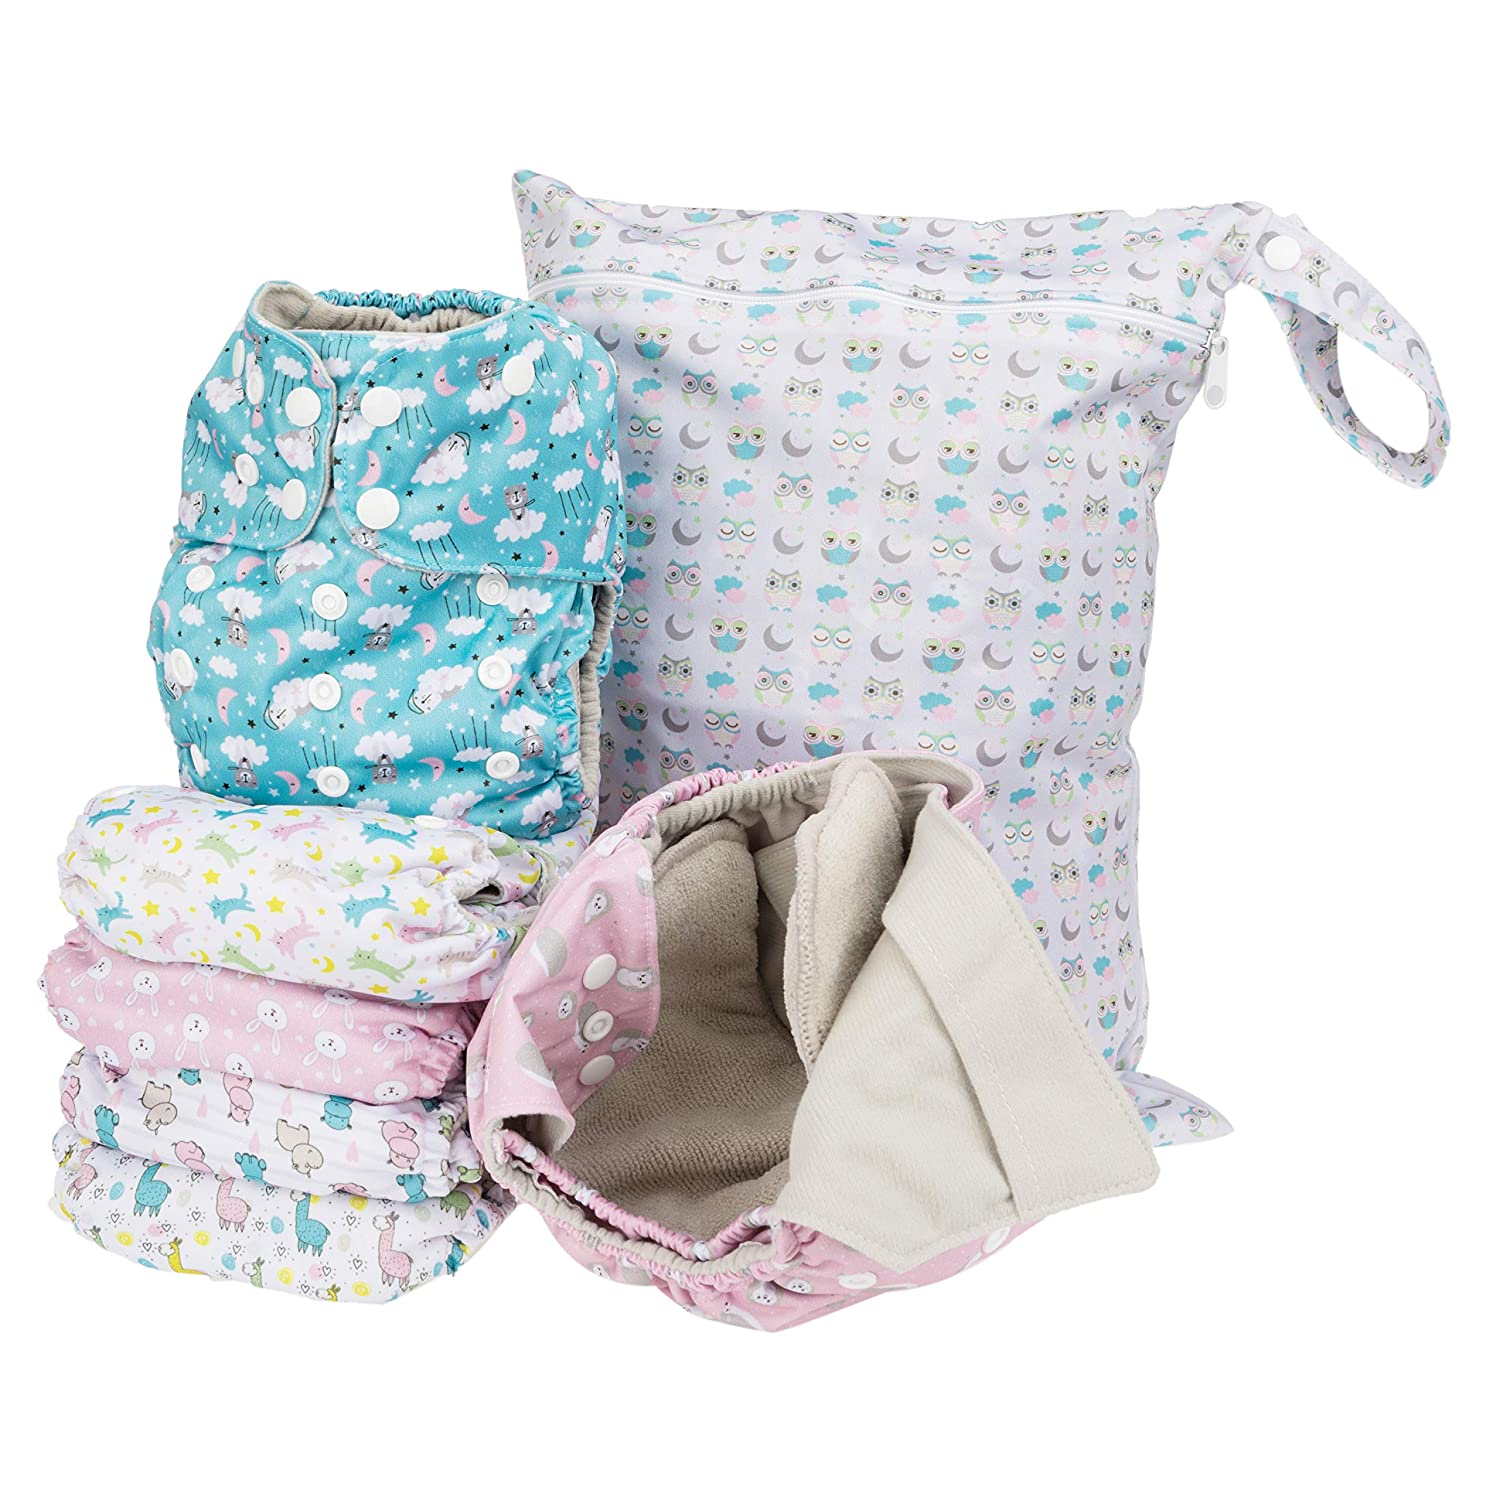 Simple Being Reusable Cloth Diapers- Double Gusset-6 Pack Pocket Adjustable Size-Waterproof Cover-6 Inserts-Wet Bag (Girls Animals)